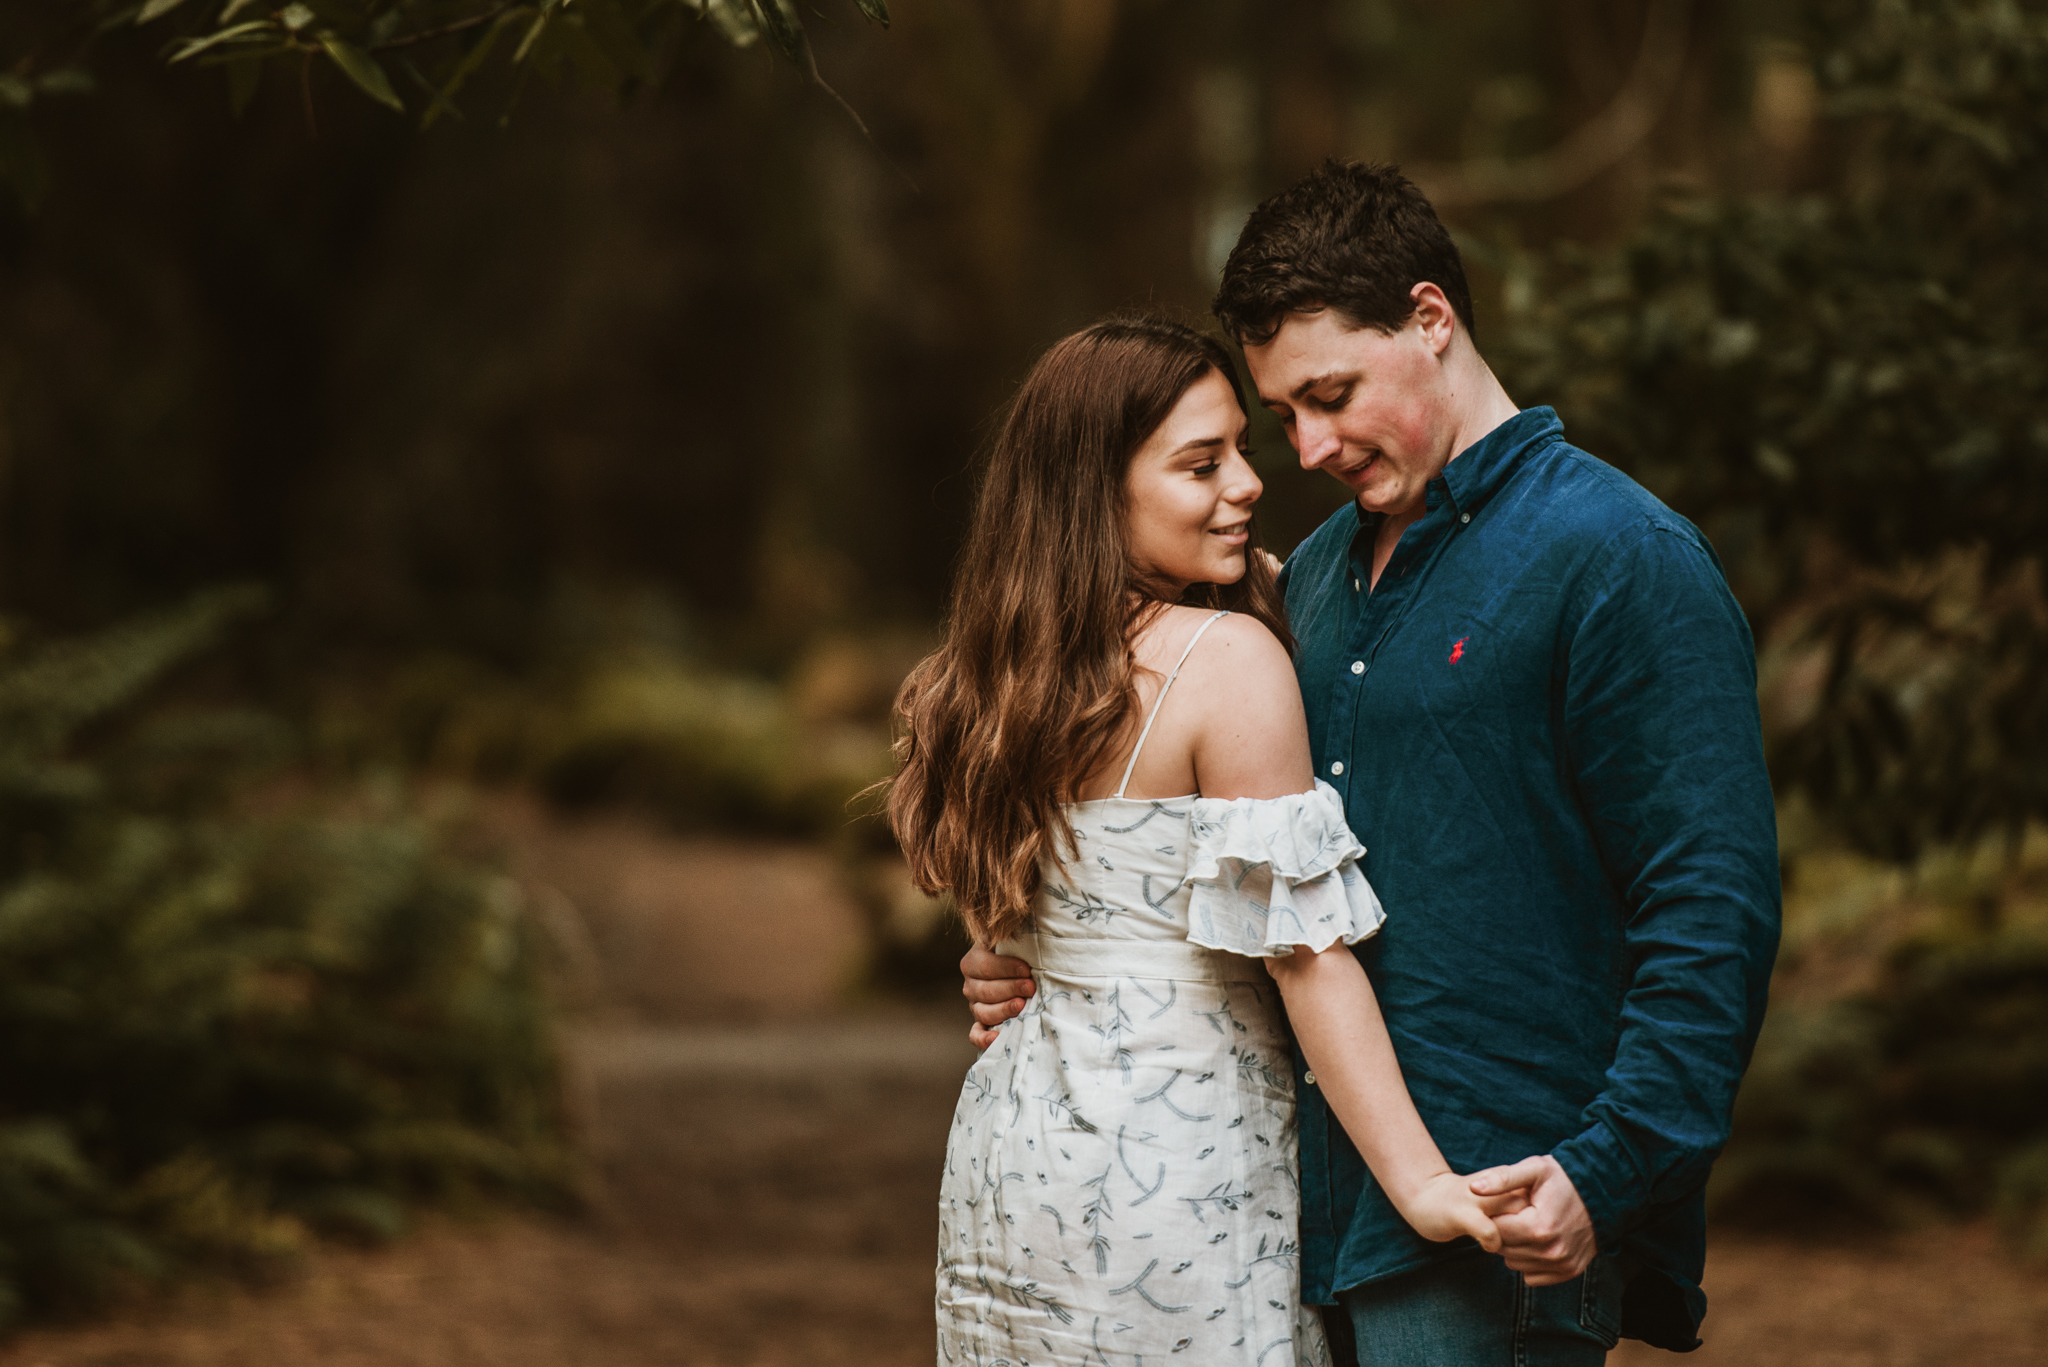 launceston couples photographer-26.jpg